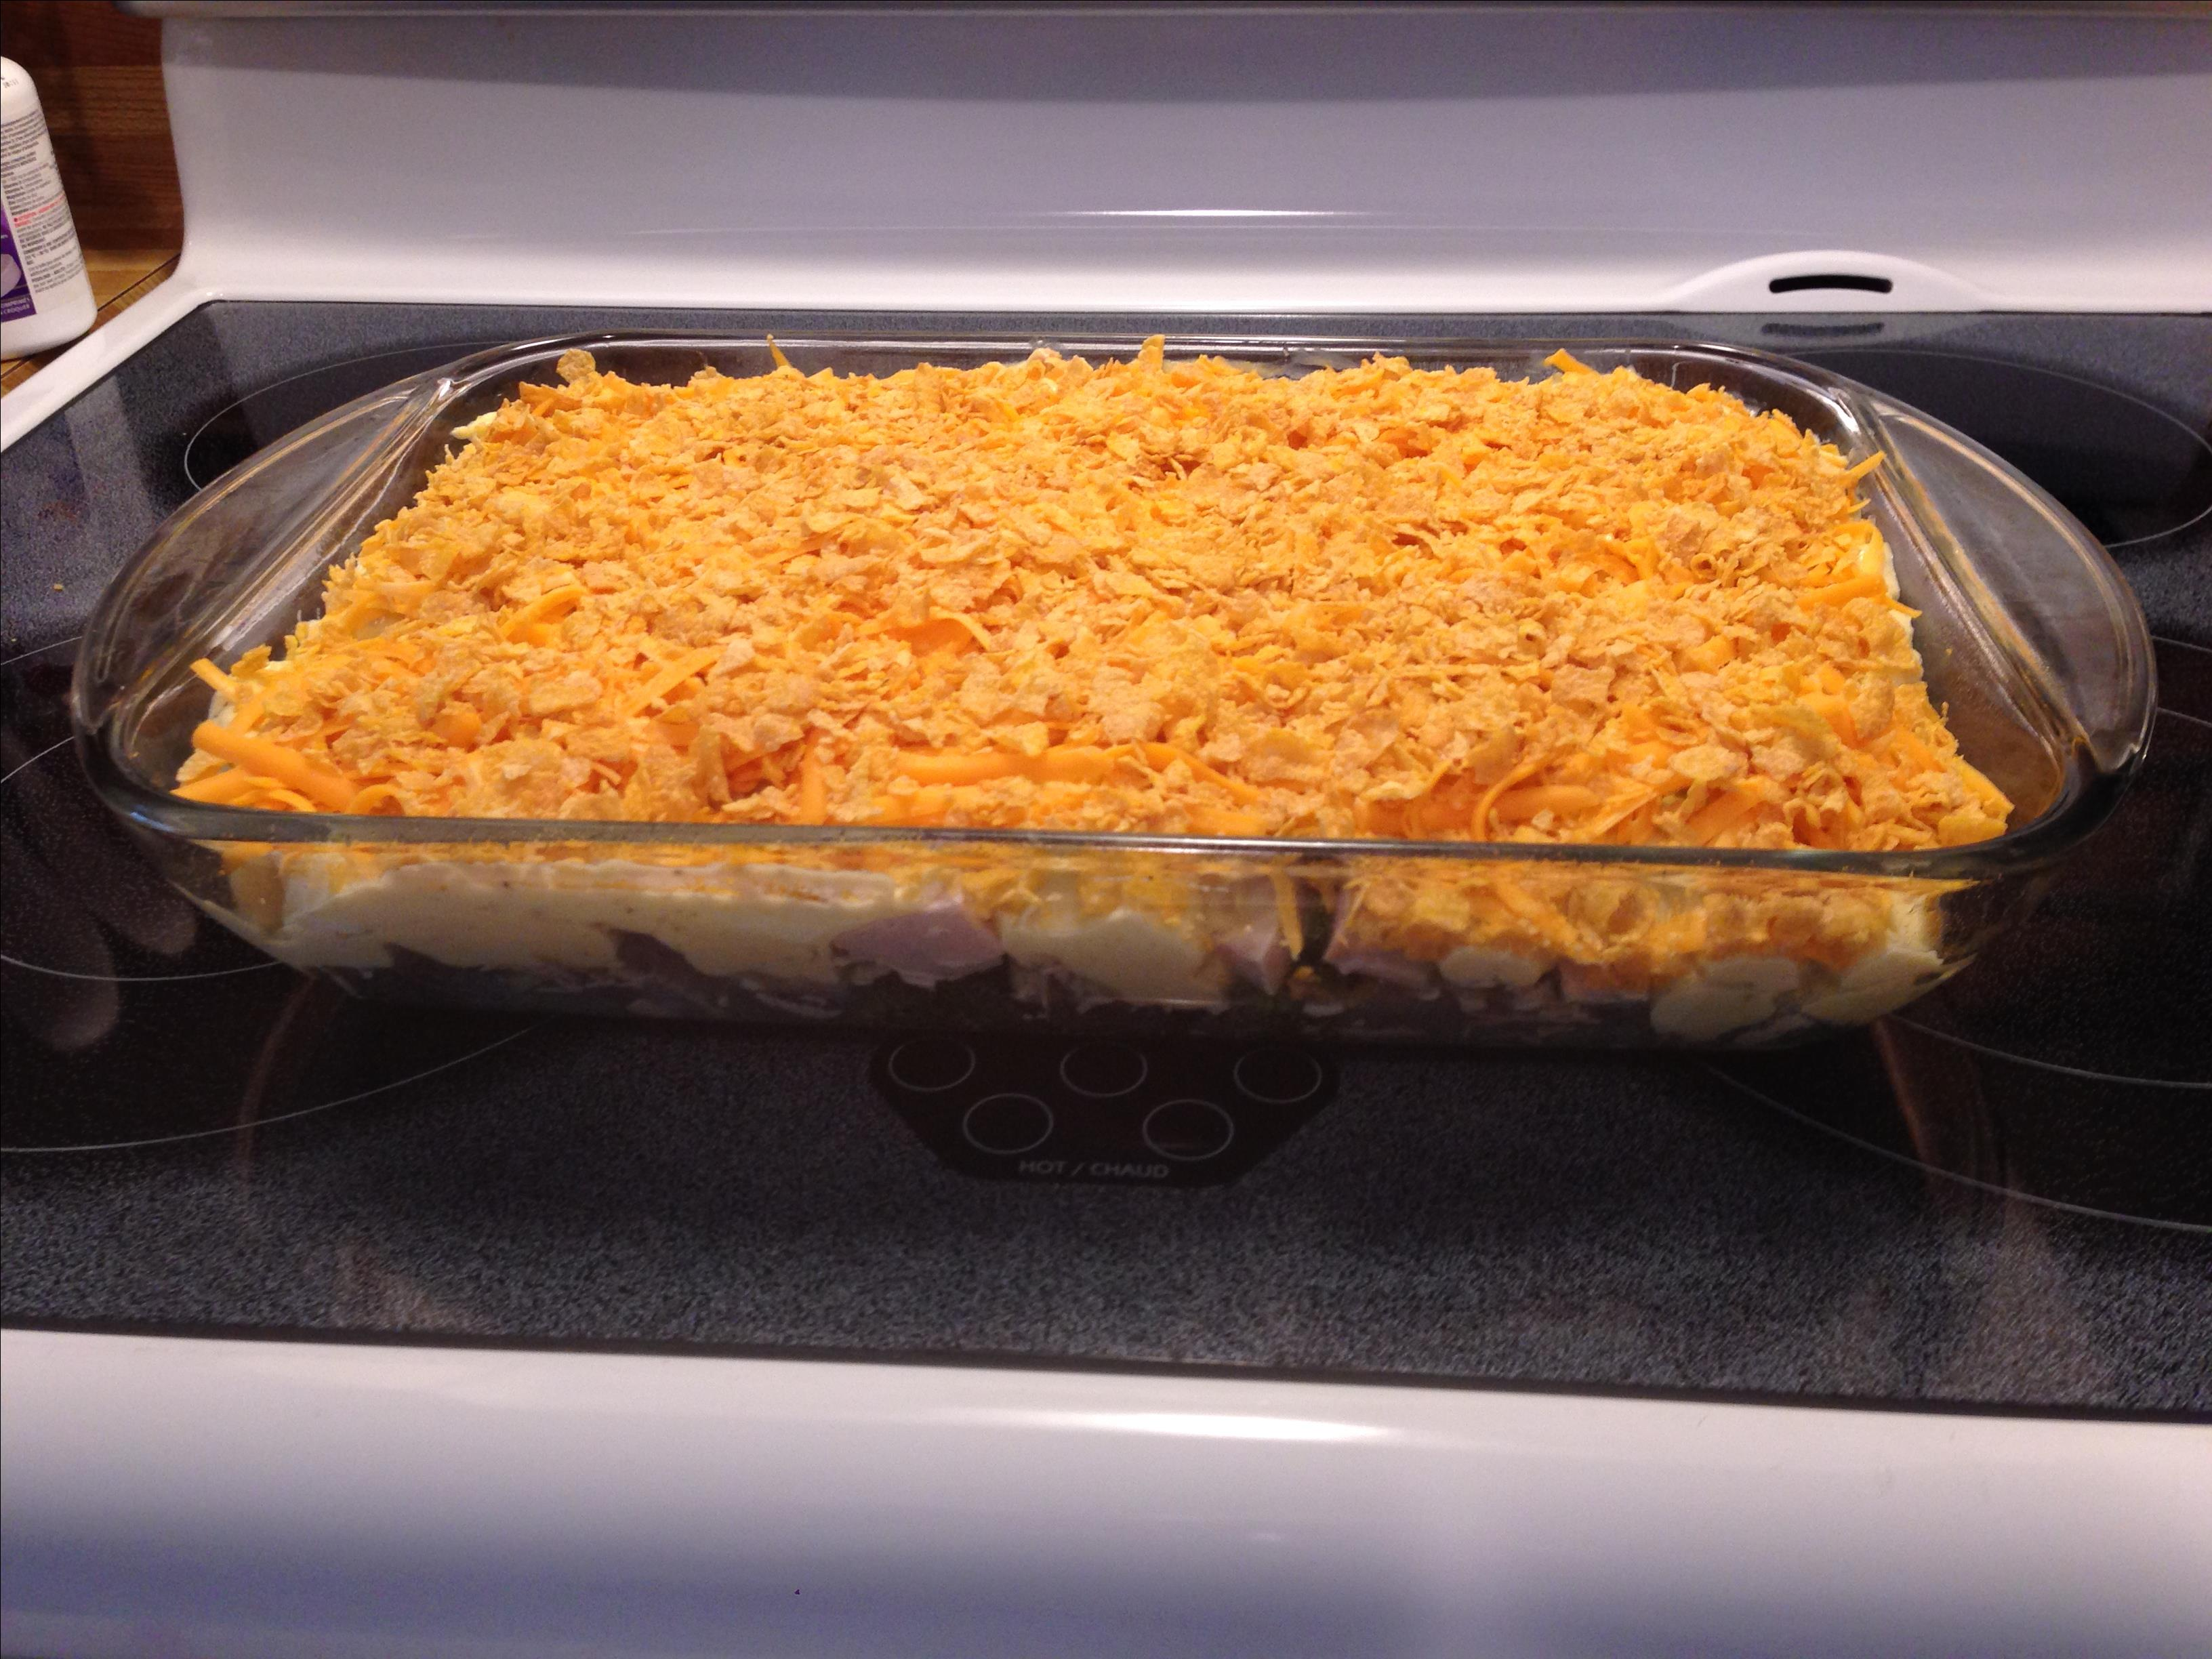 Curried Chicken and Broccoli Casserole MauraLacelle